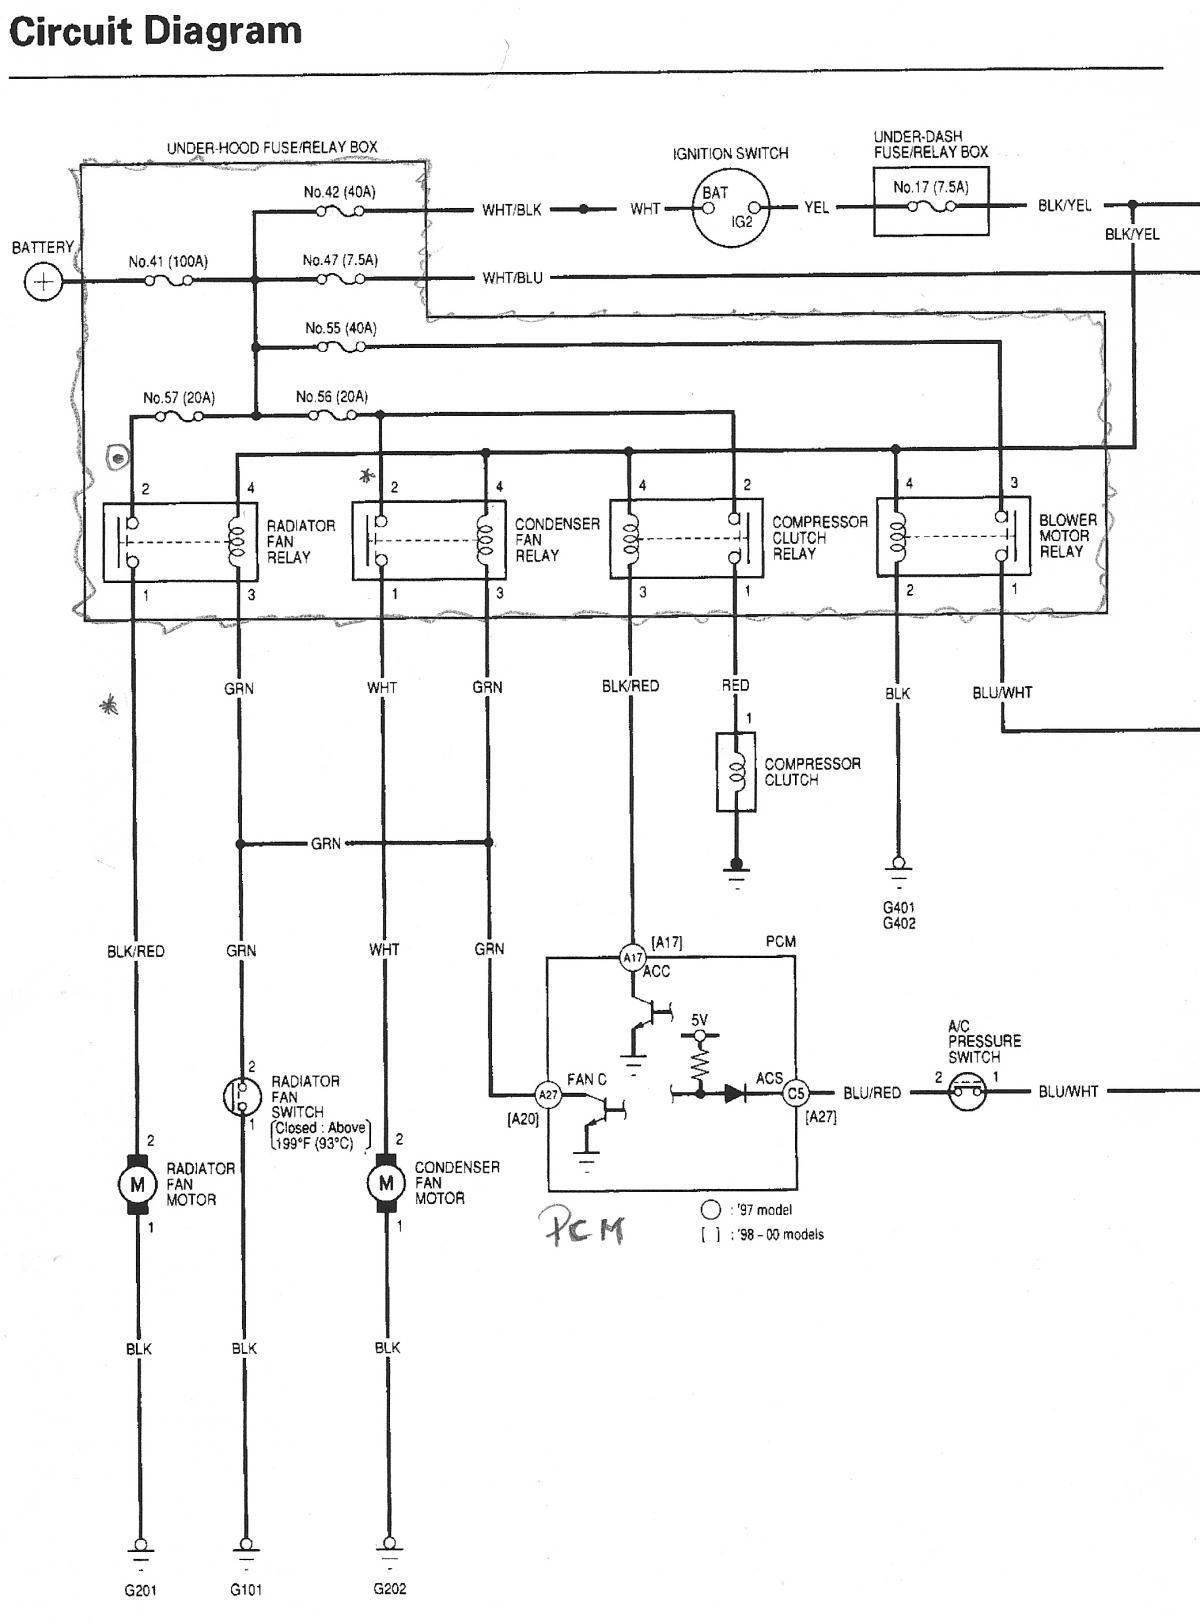 hight resolution of 2005 honda element engine fuse box diagram 16 4 castlefans de u2022 2004 honda element wiring diagram